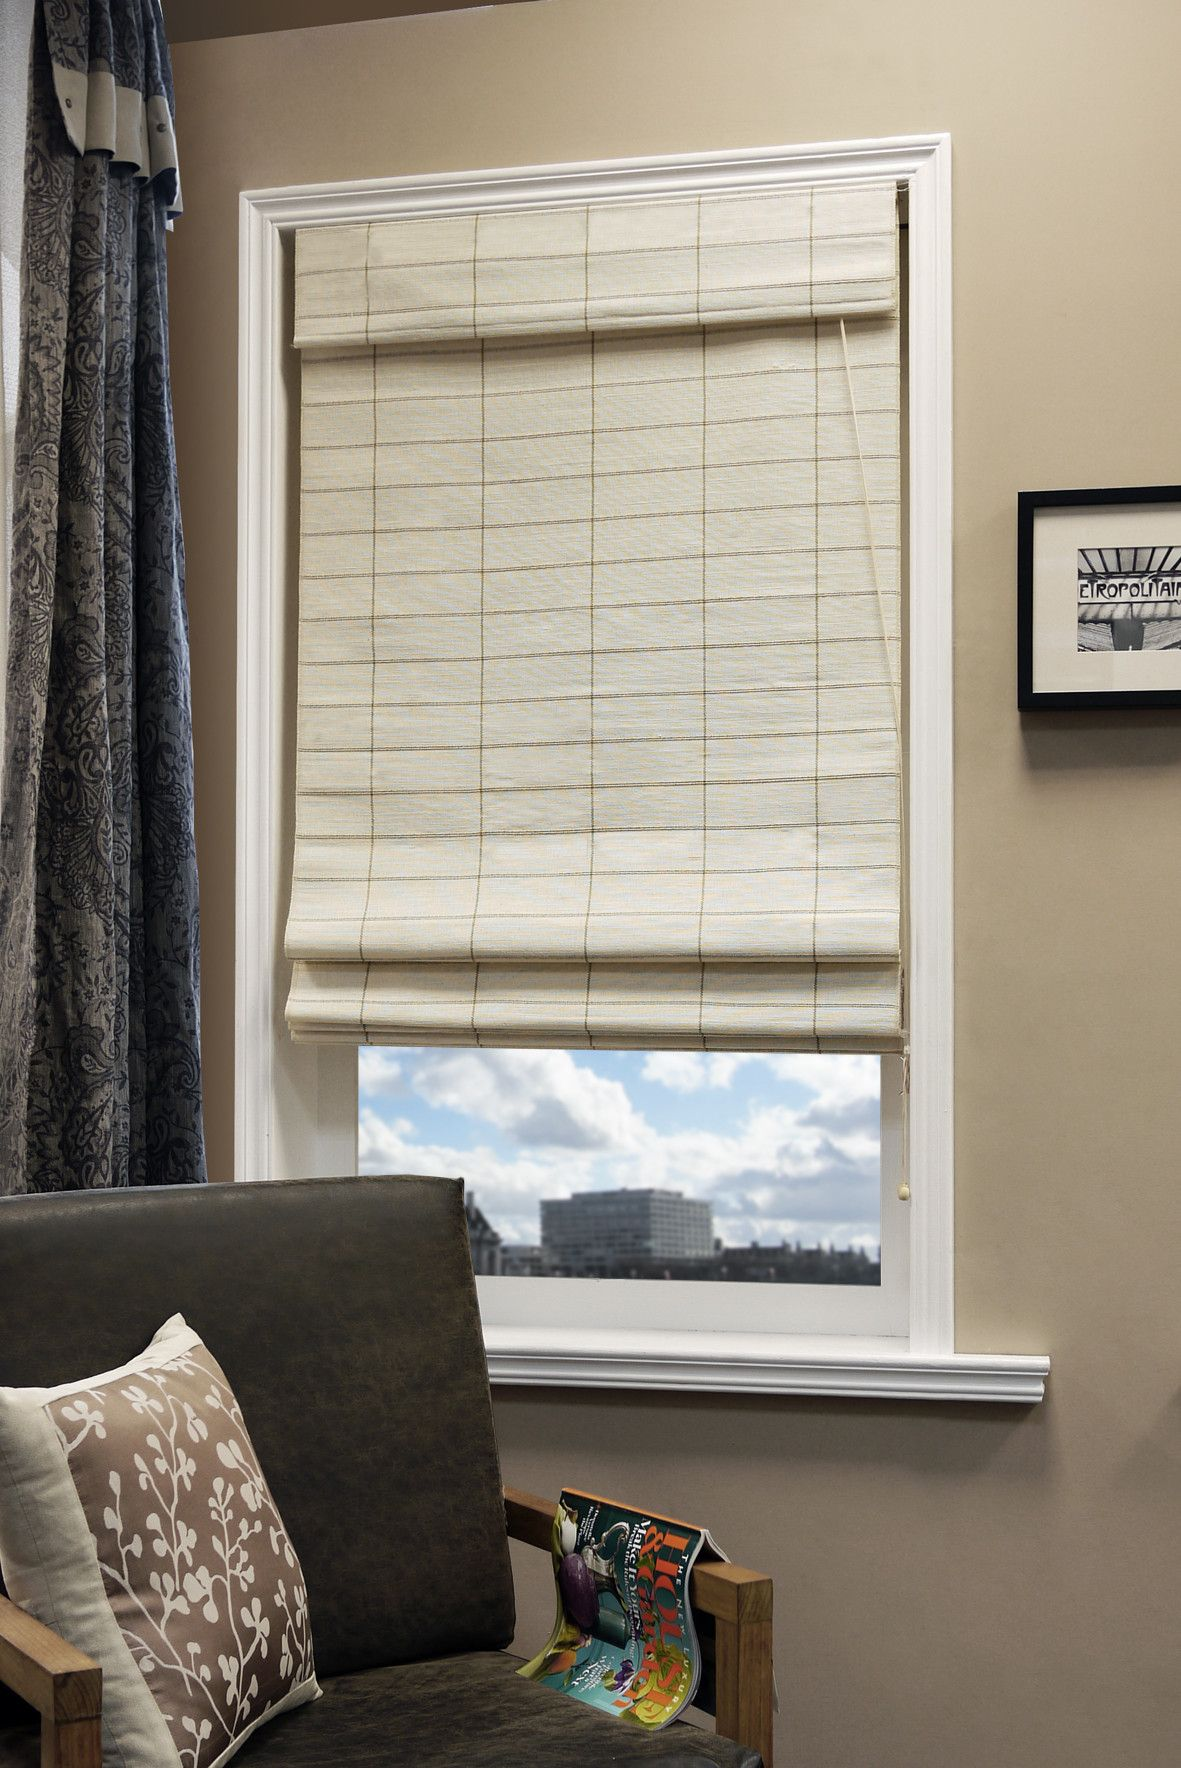 Kyoto cotton and jute privacy roman shade window covering